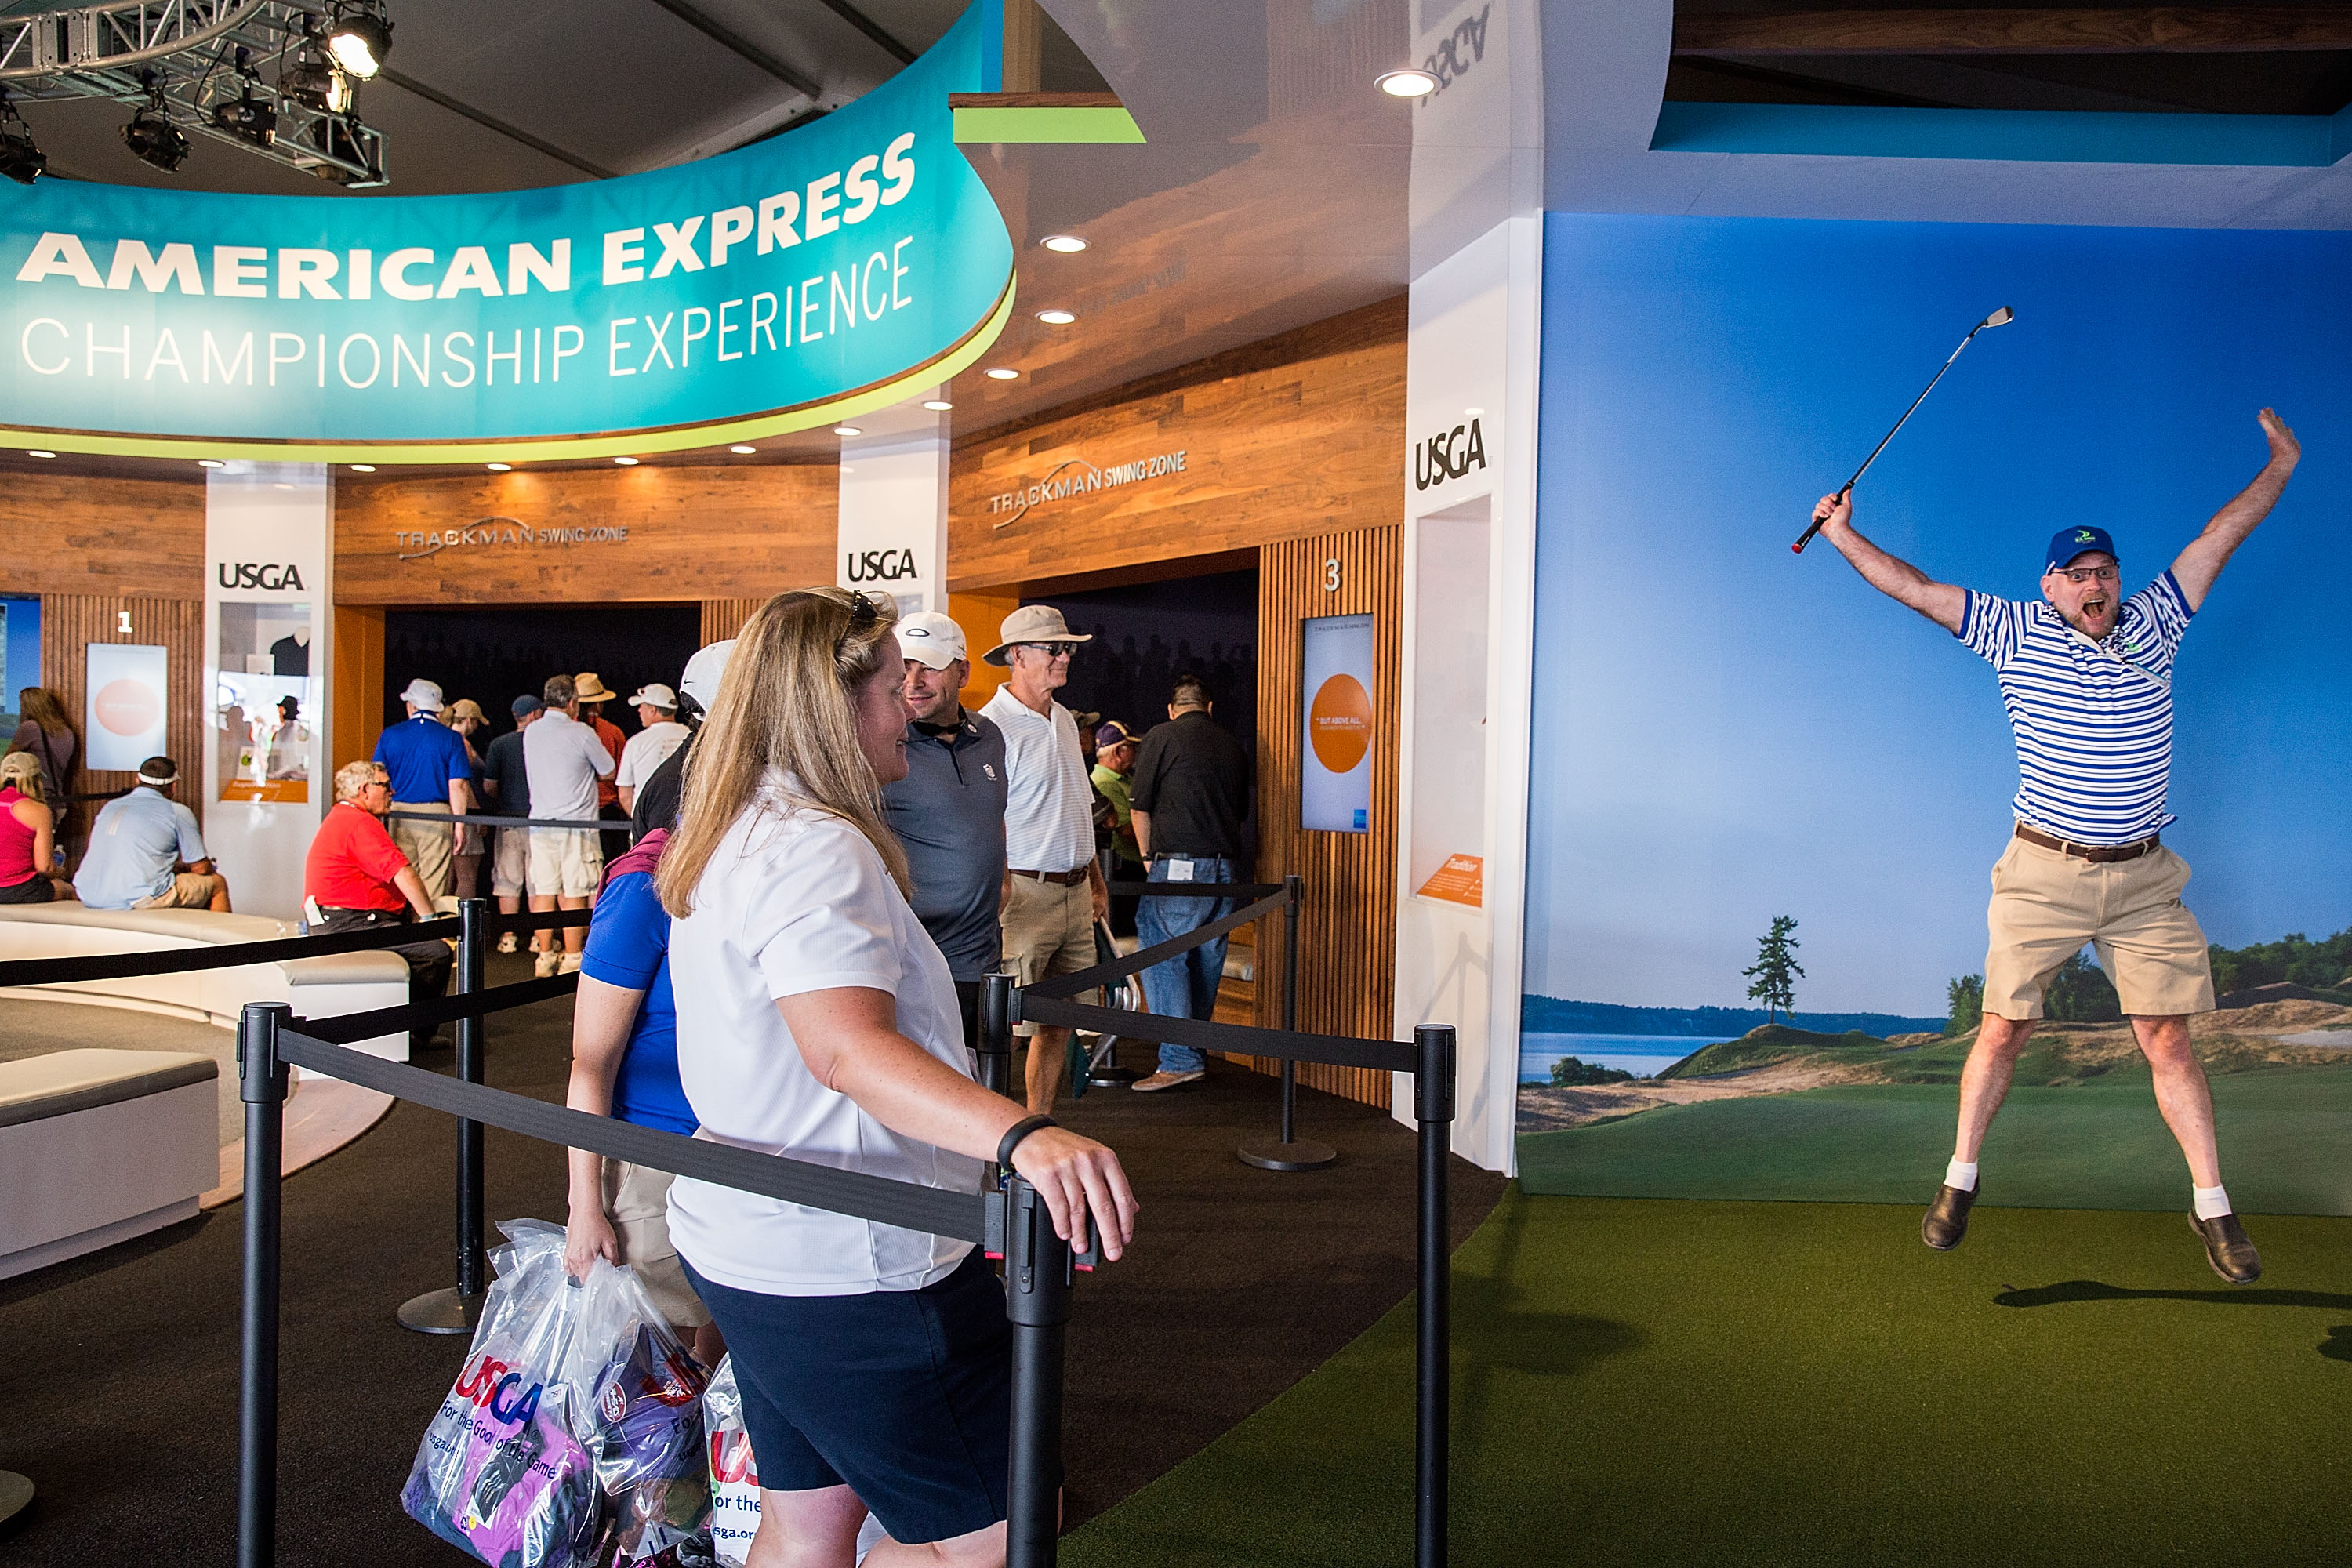 The American Express Championship Experience At The 2015 U.S. Open Chambers Bay Golf Course With Dr. Bob Rotella And Dr. Gio Valiante